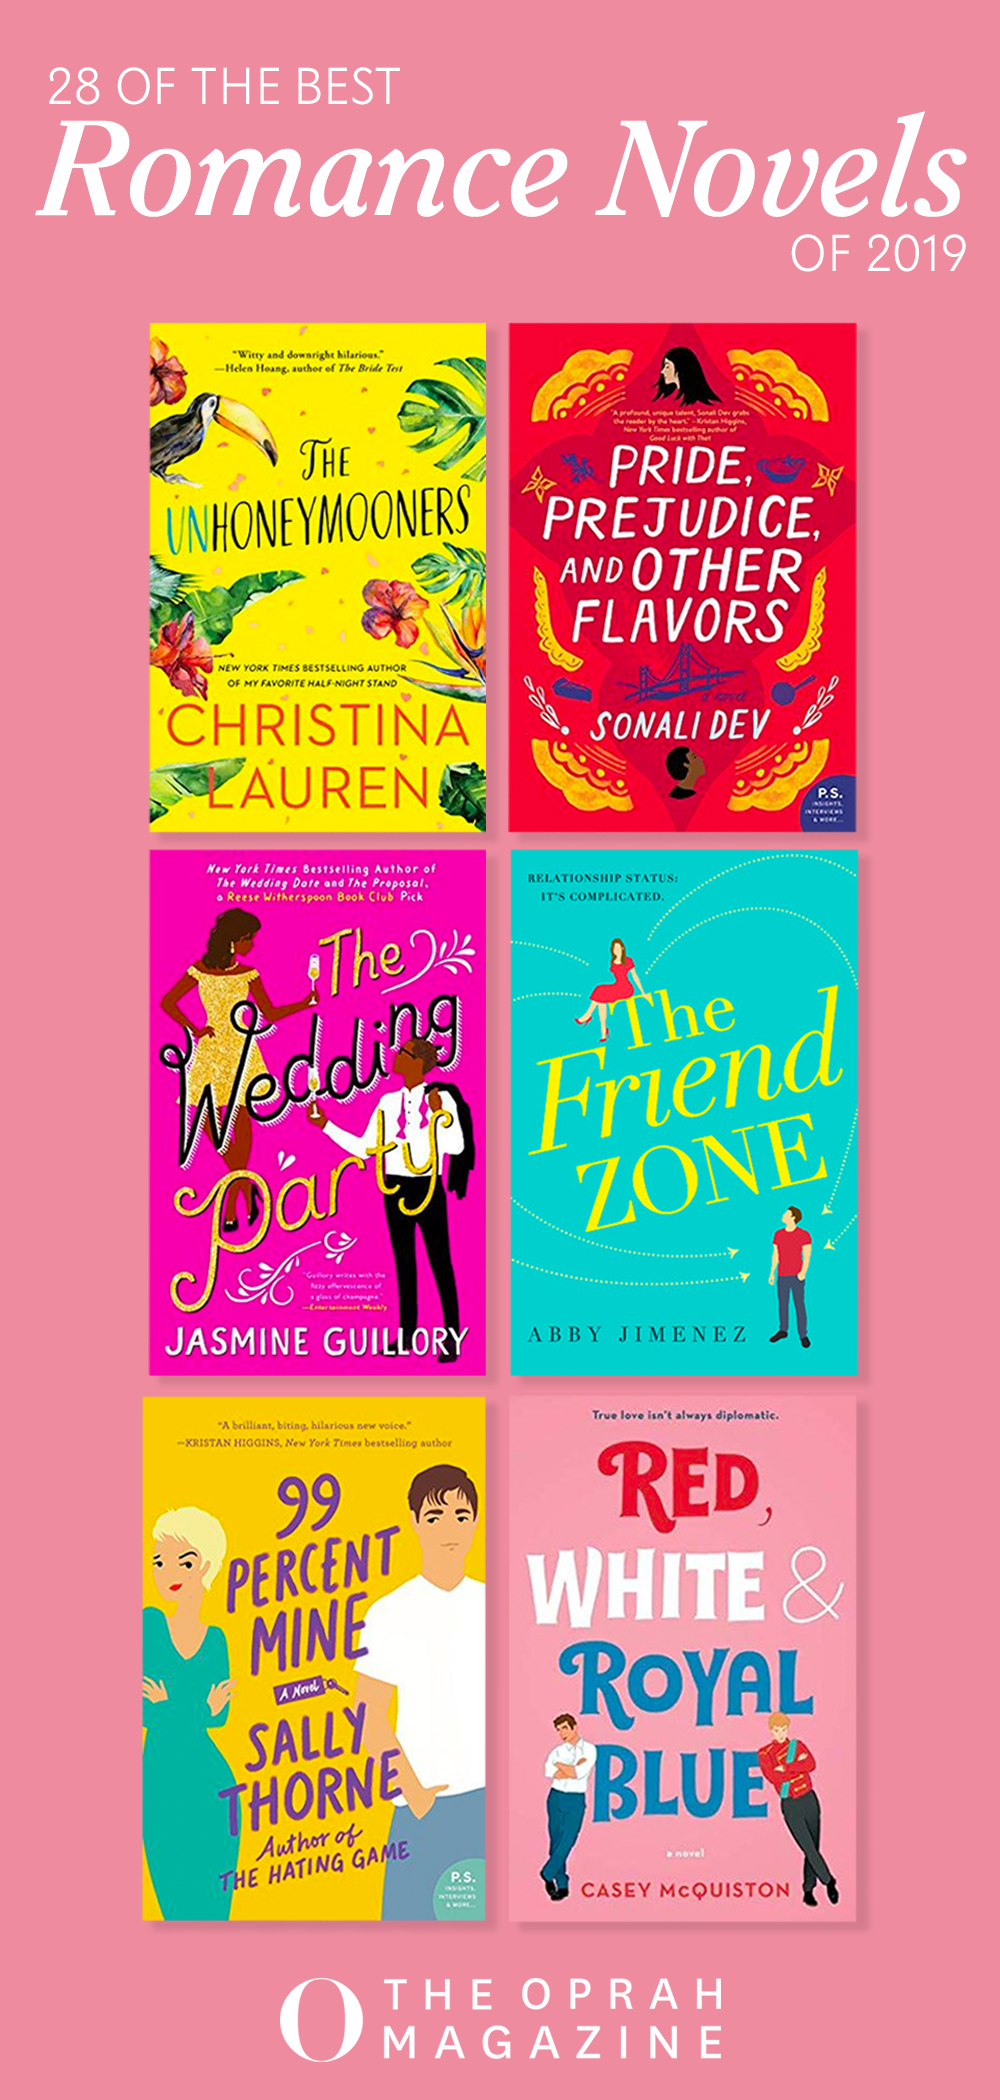 Pin by Oprah on 28 of the Best Romance Novels of 2019 That